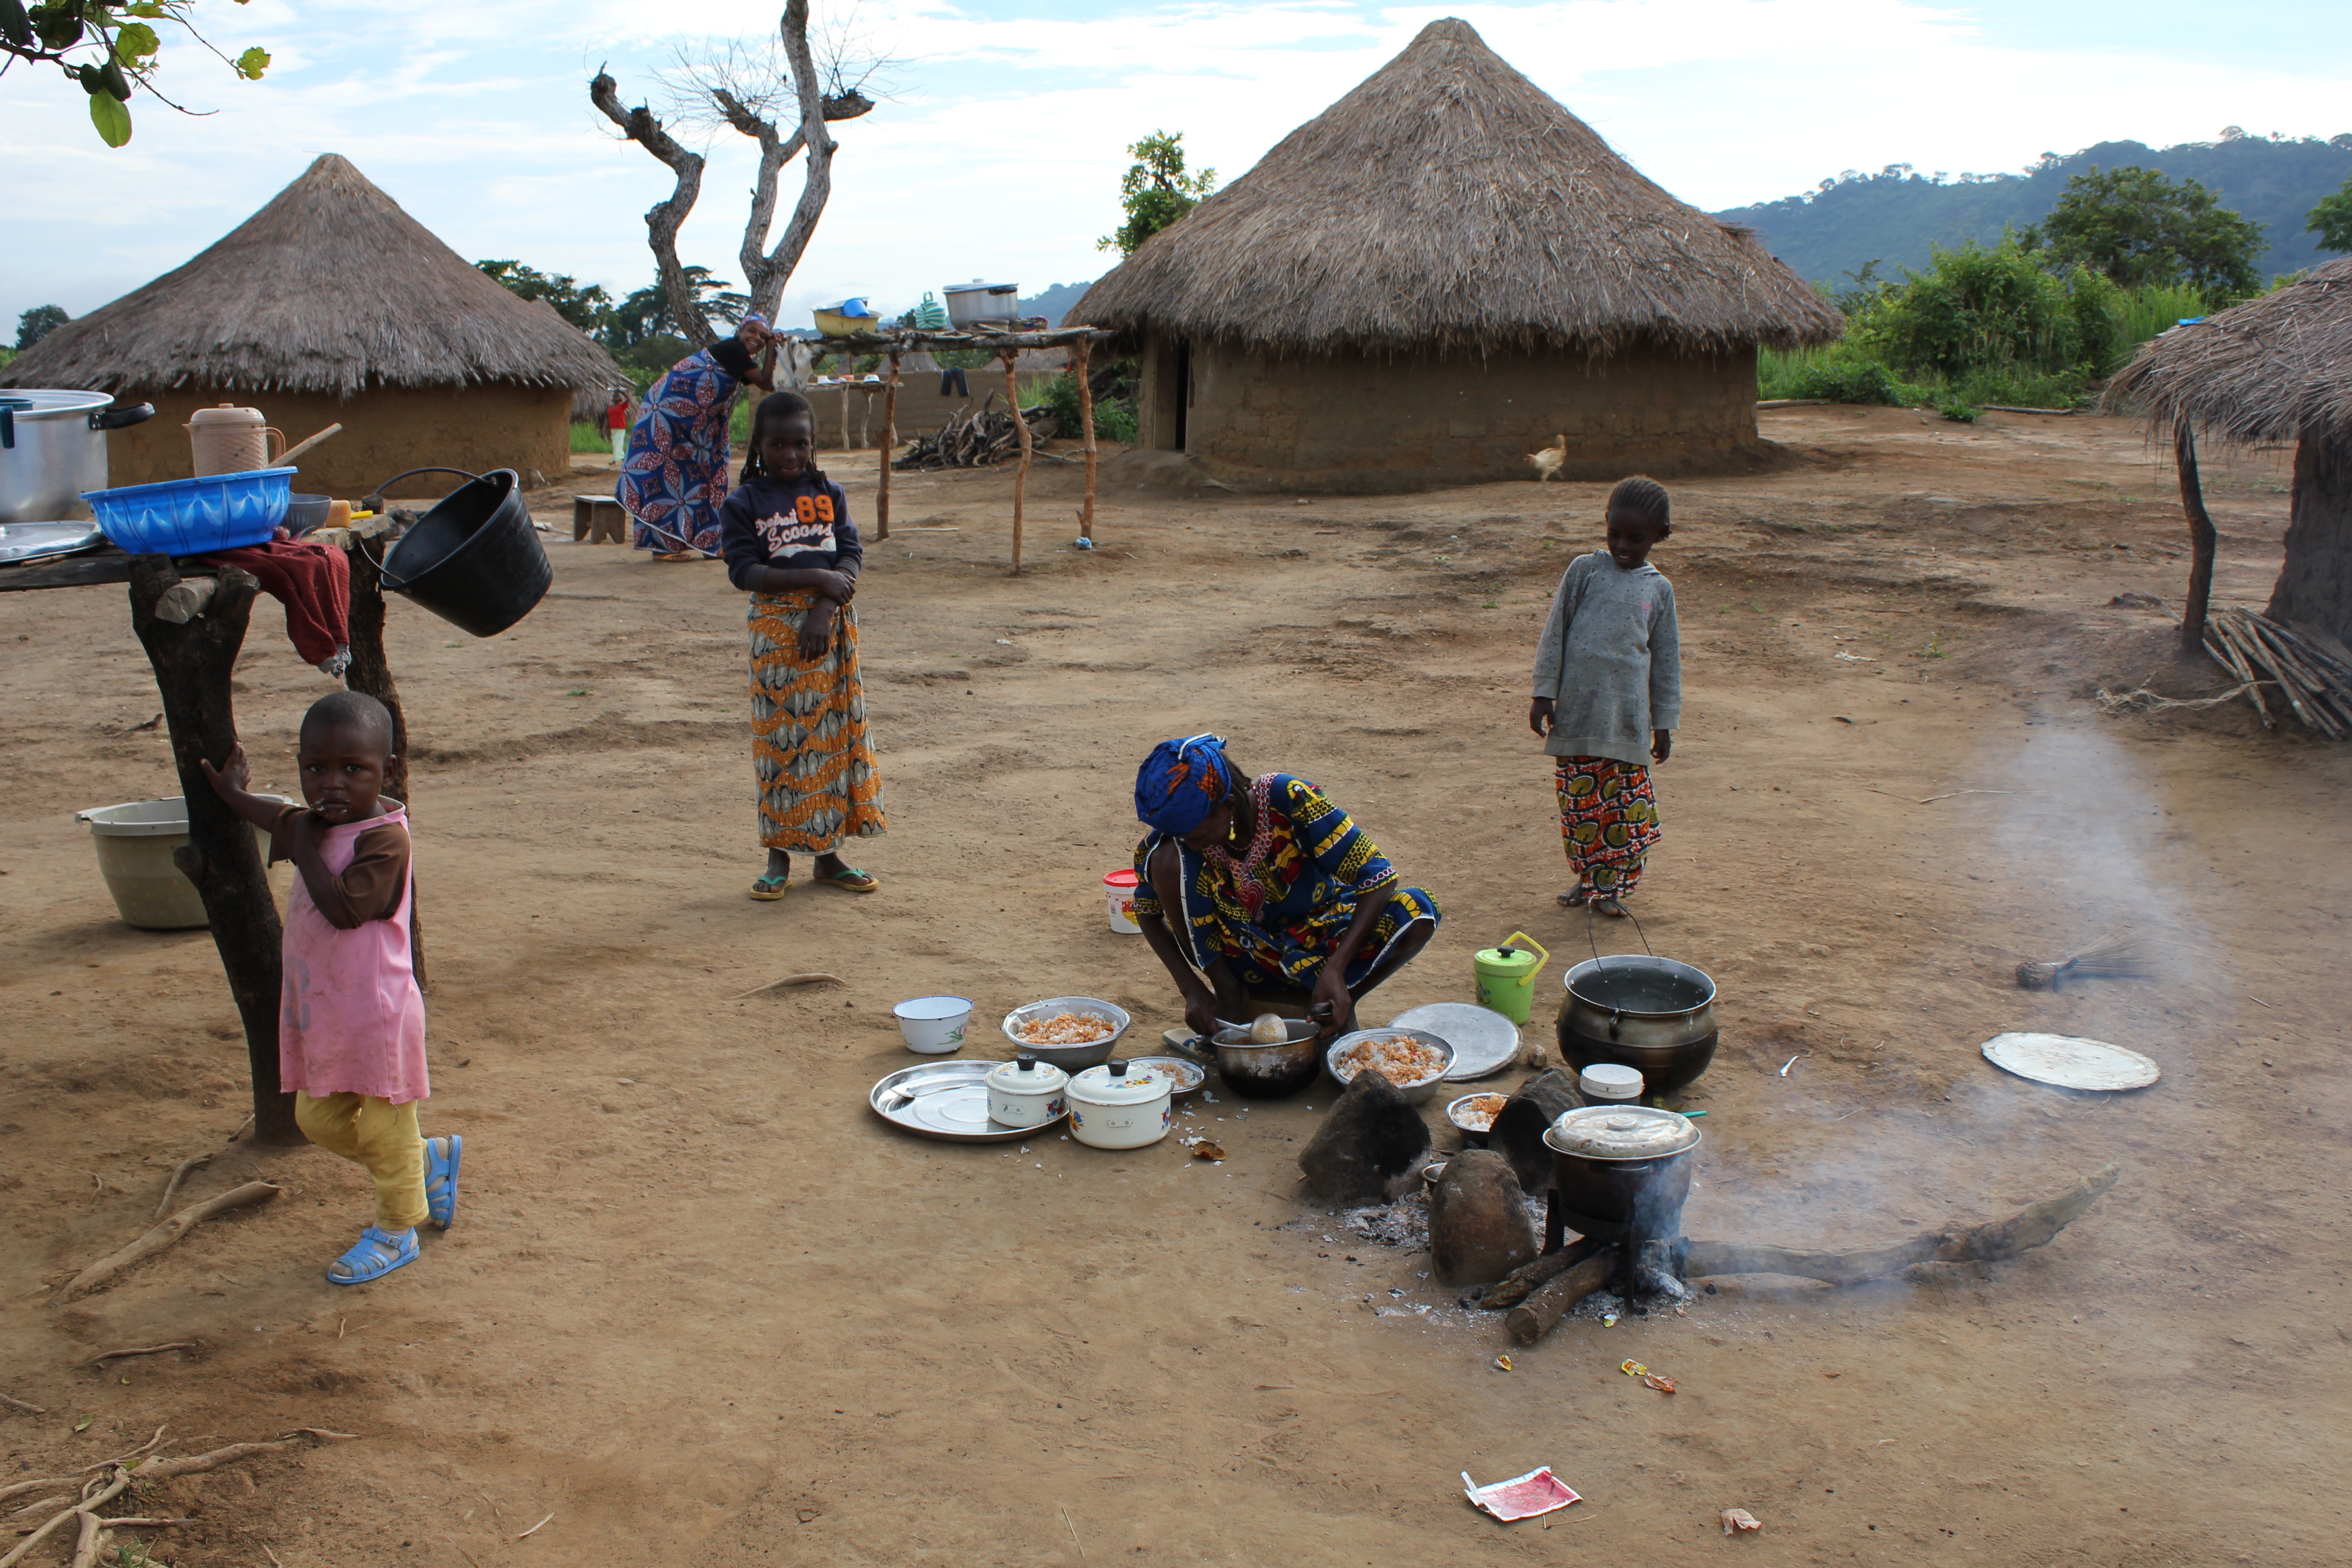 In an arid region, three simple round huts with roofs made of dried palm leaves. In front of them, a black woman cooks on a fire on the ground with simple white crockery (pans and dishes). Two black children stand behind her, watching. A third child, in the front left corner of the picture, is wearing a pink shirt and yellow pants. She is looking at the camera, holding the base of an improvised wooden table.